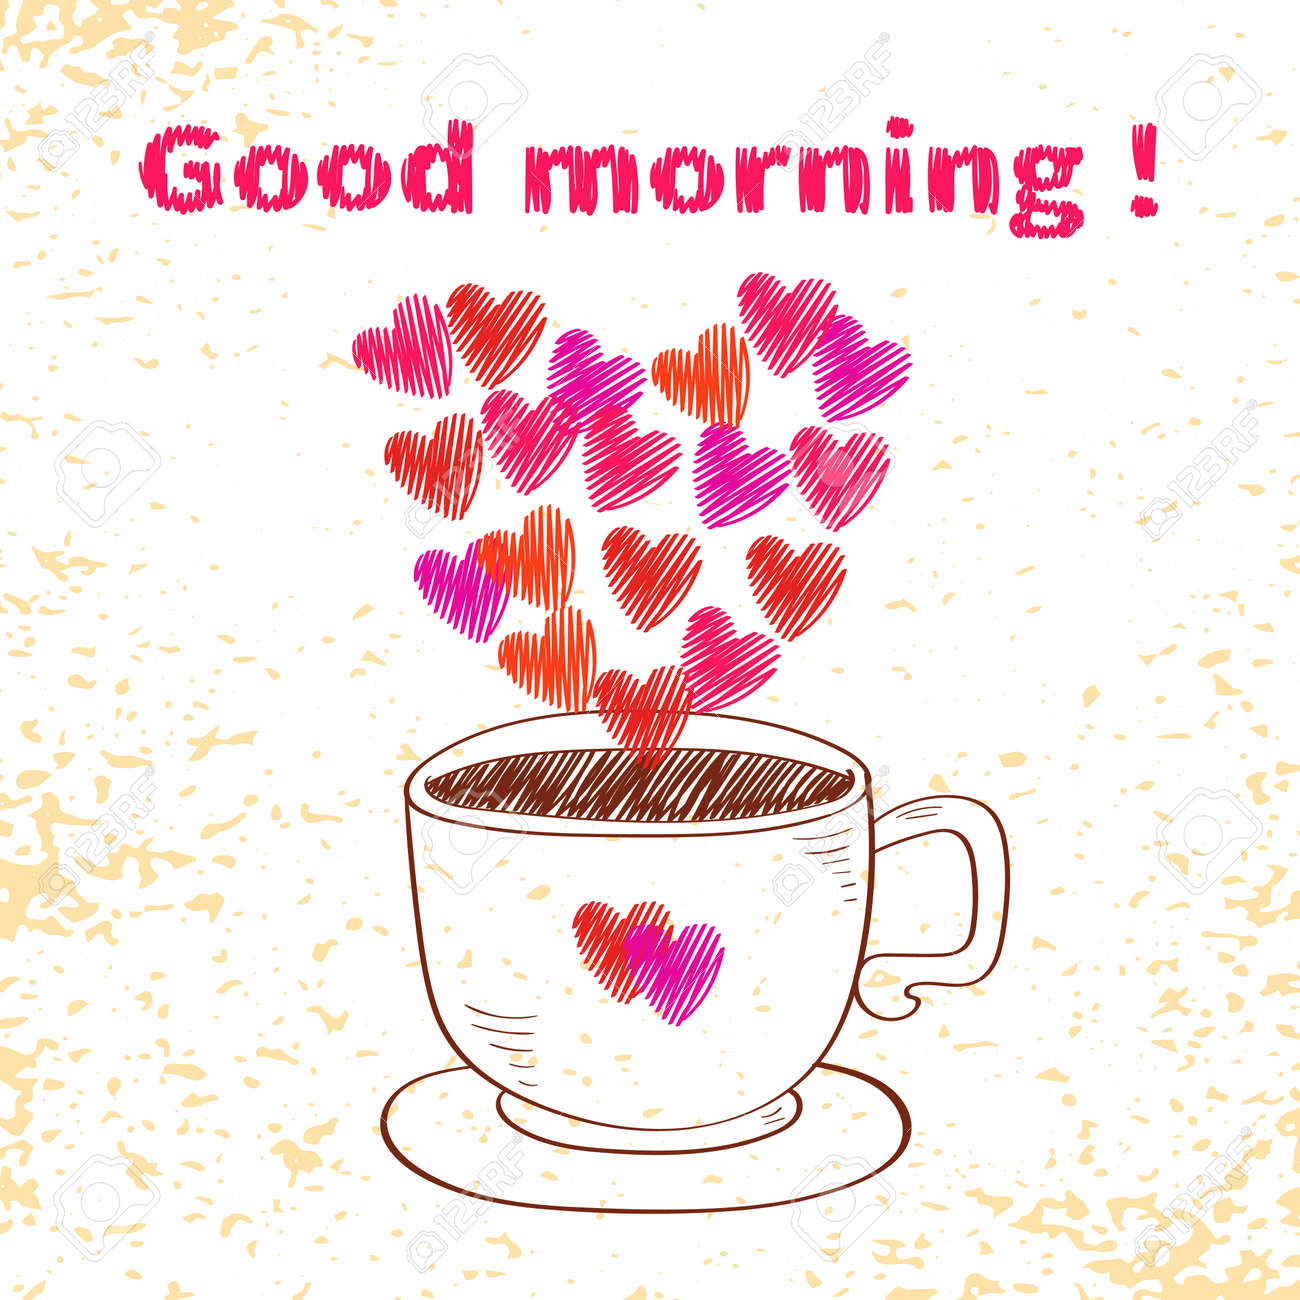 Good Morning Card Sketchy Cup With Hearts As Steam Doodle Vector